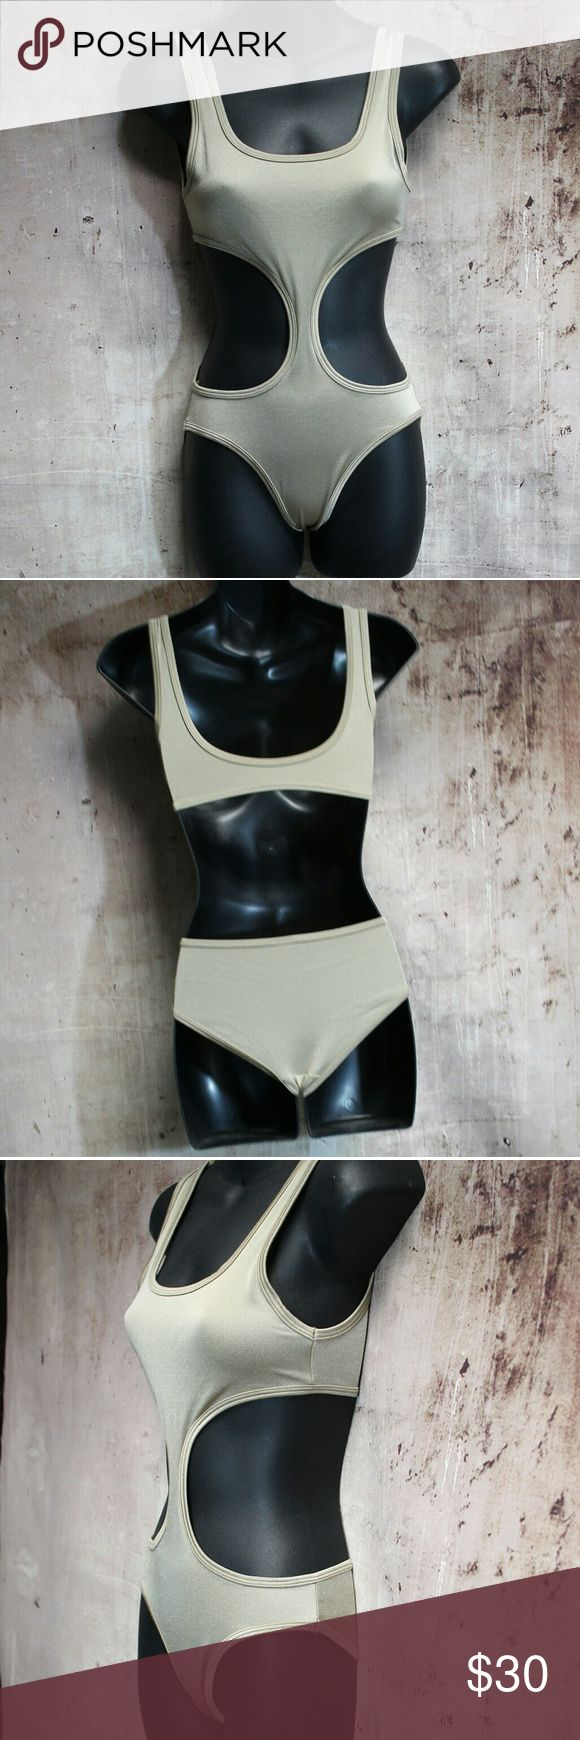 American Apparel Shiny Gold Cut Out Swimsuit NWOT AA swimsuit. No runs, tears or snags. Size small. American Apparel Swim One Pieces